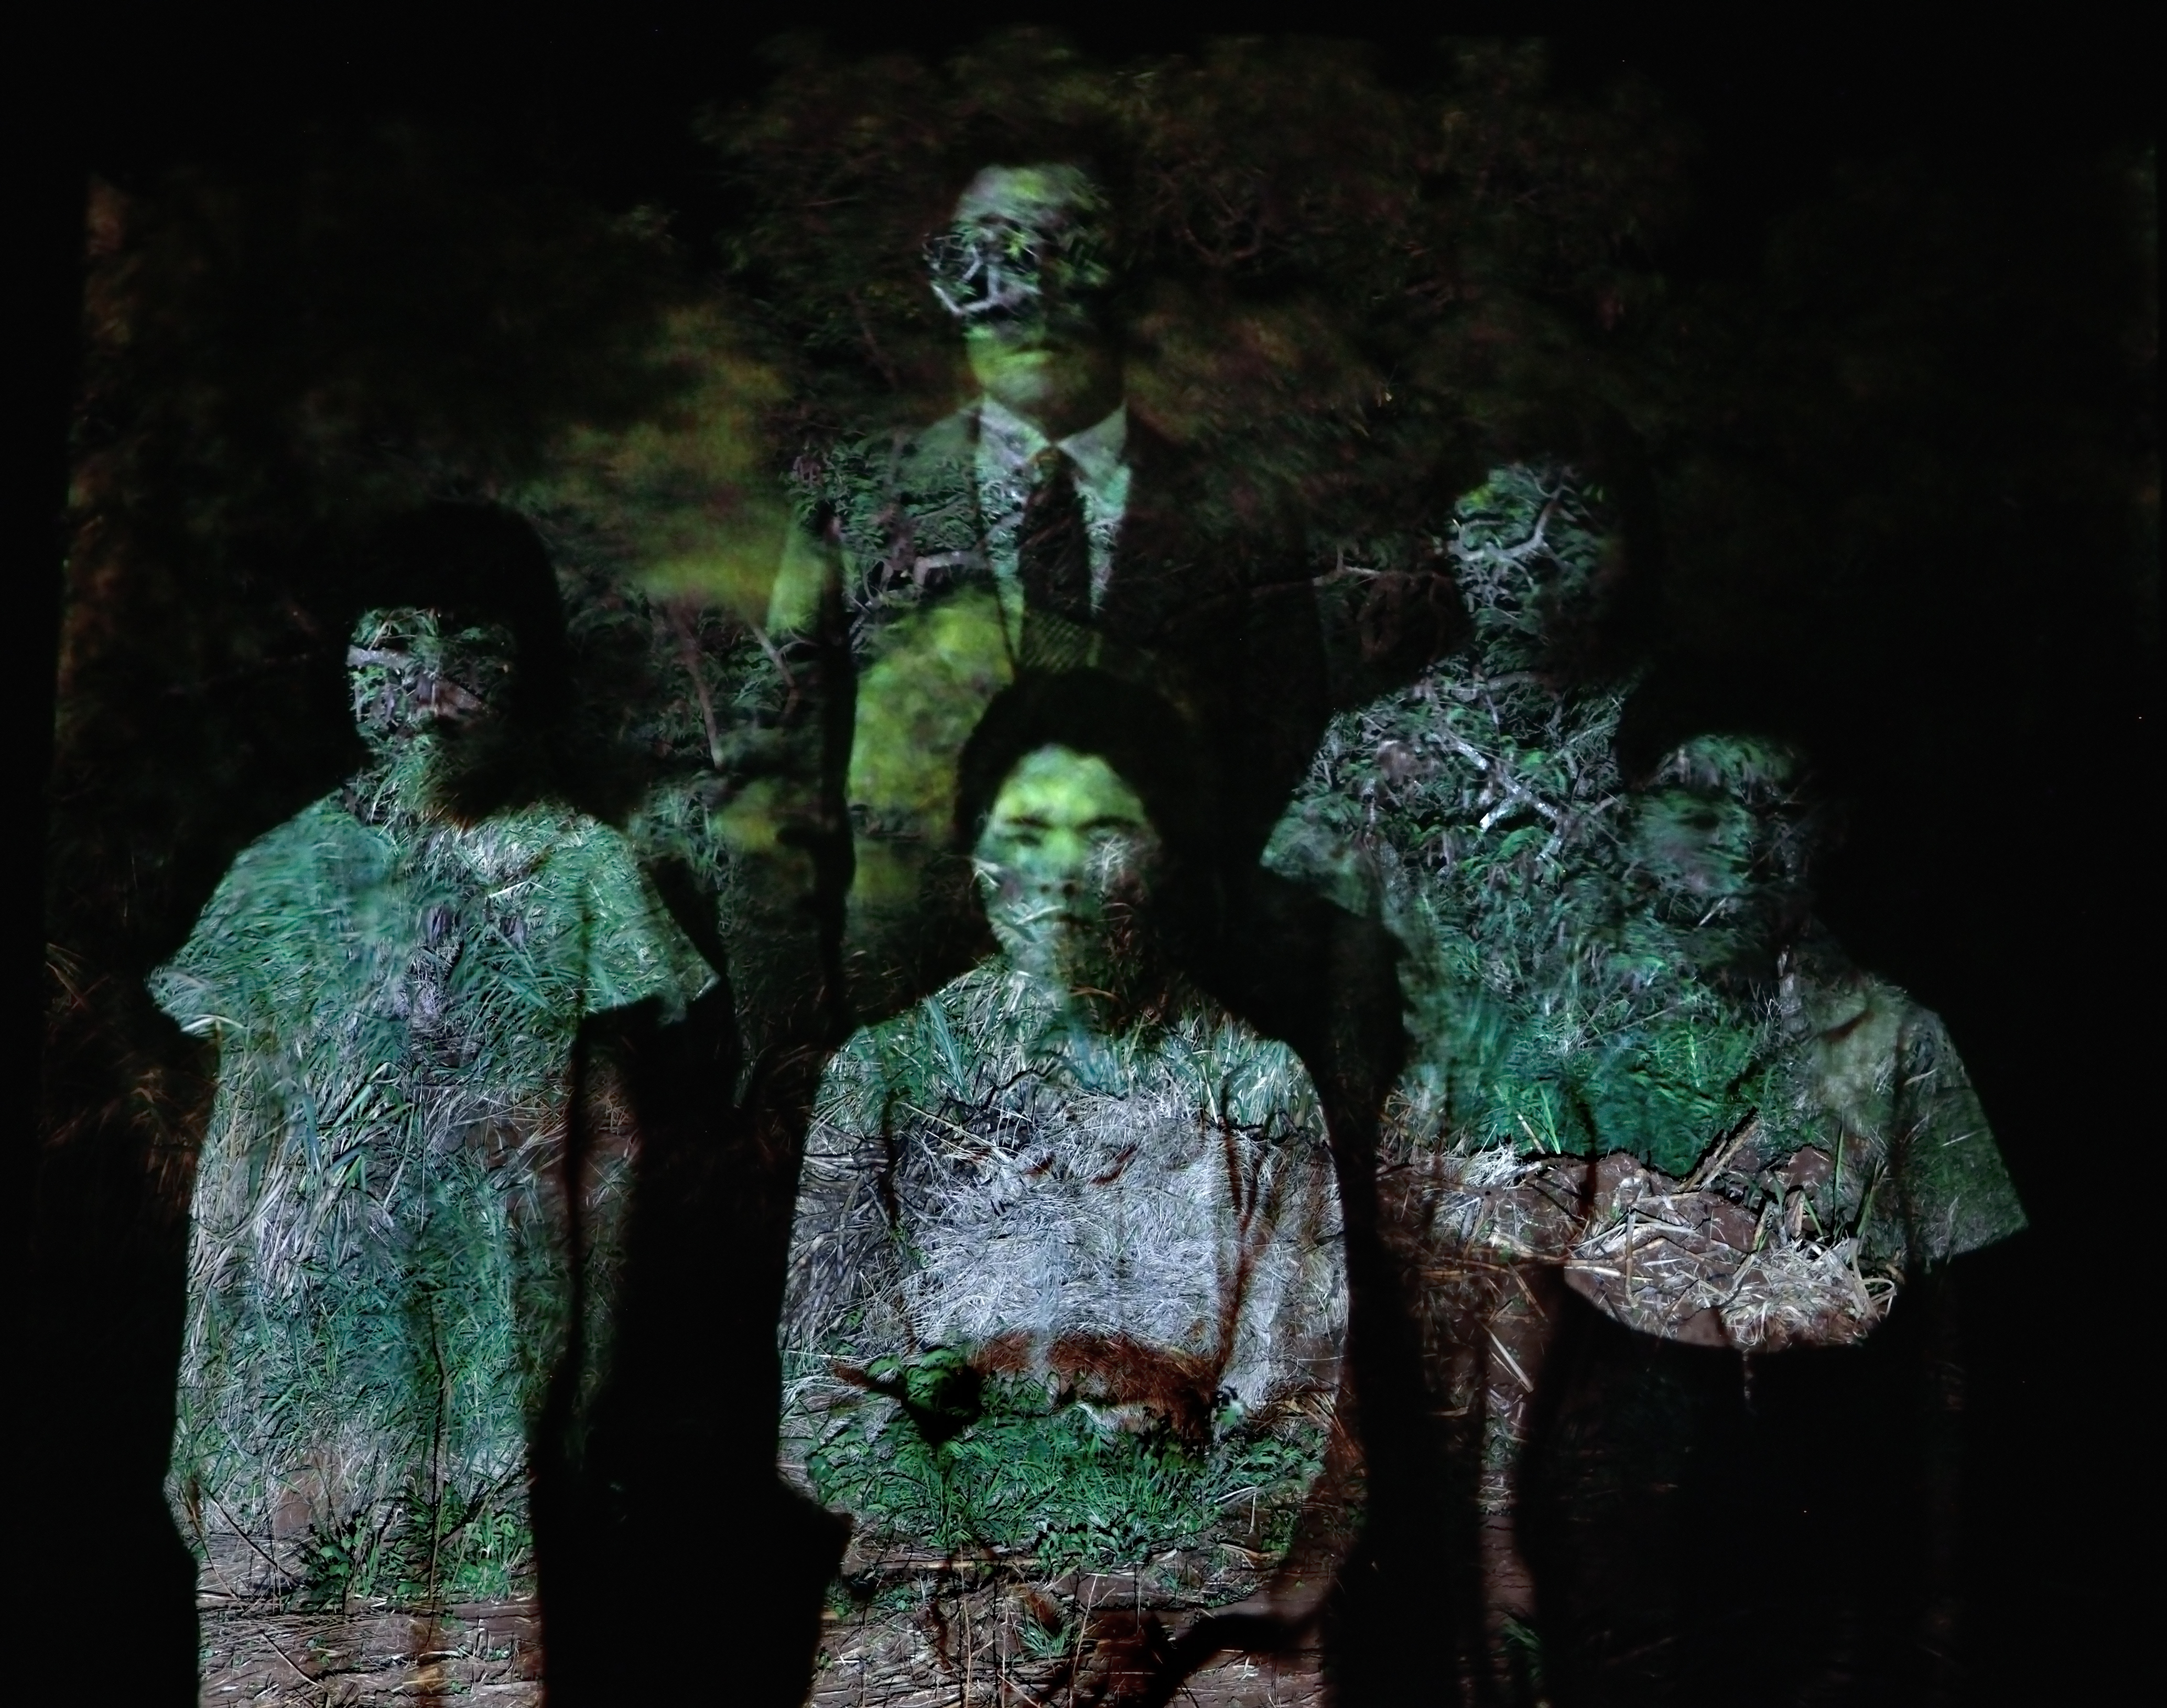 """In her companion exhibit at the MACC, Ai Iwane pays tribute to the Issei from Fukushima who taught """"Fukushima Ondo"""" to their neighbors in Keähua village in Pä'ia. In the above photo, Ai Iwane projected a family photo of Shosuke Nihei from Kailua Camp onto current landscape from the area."""